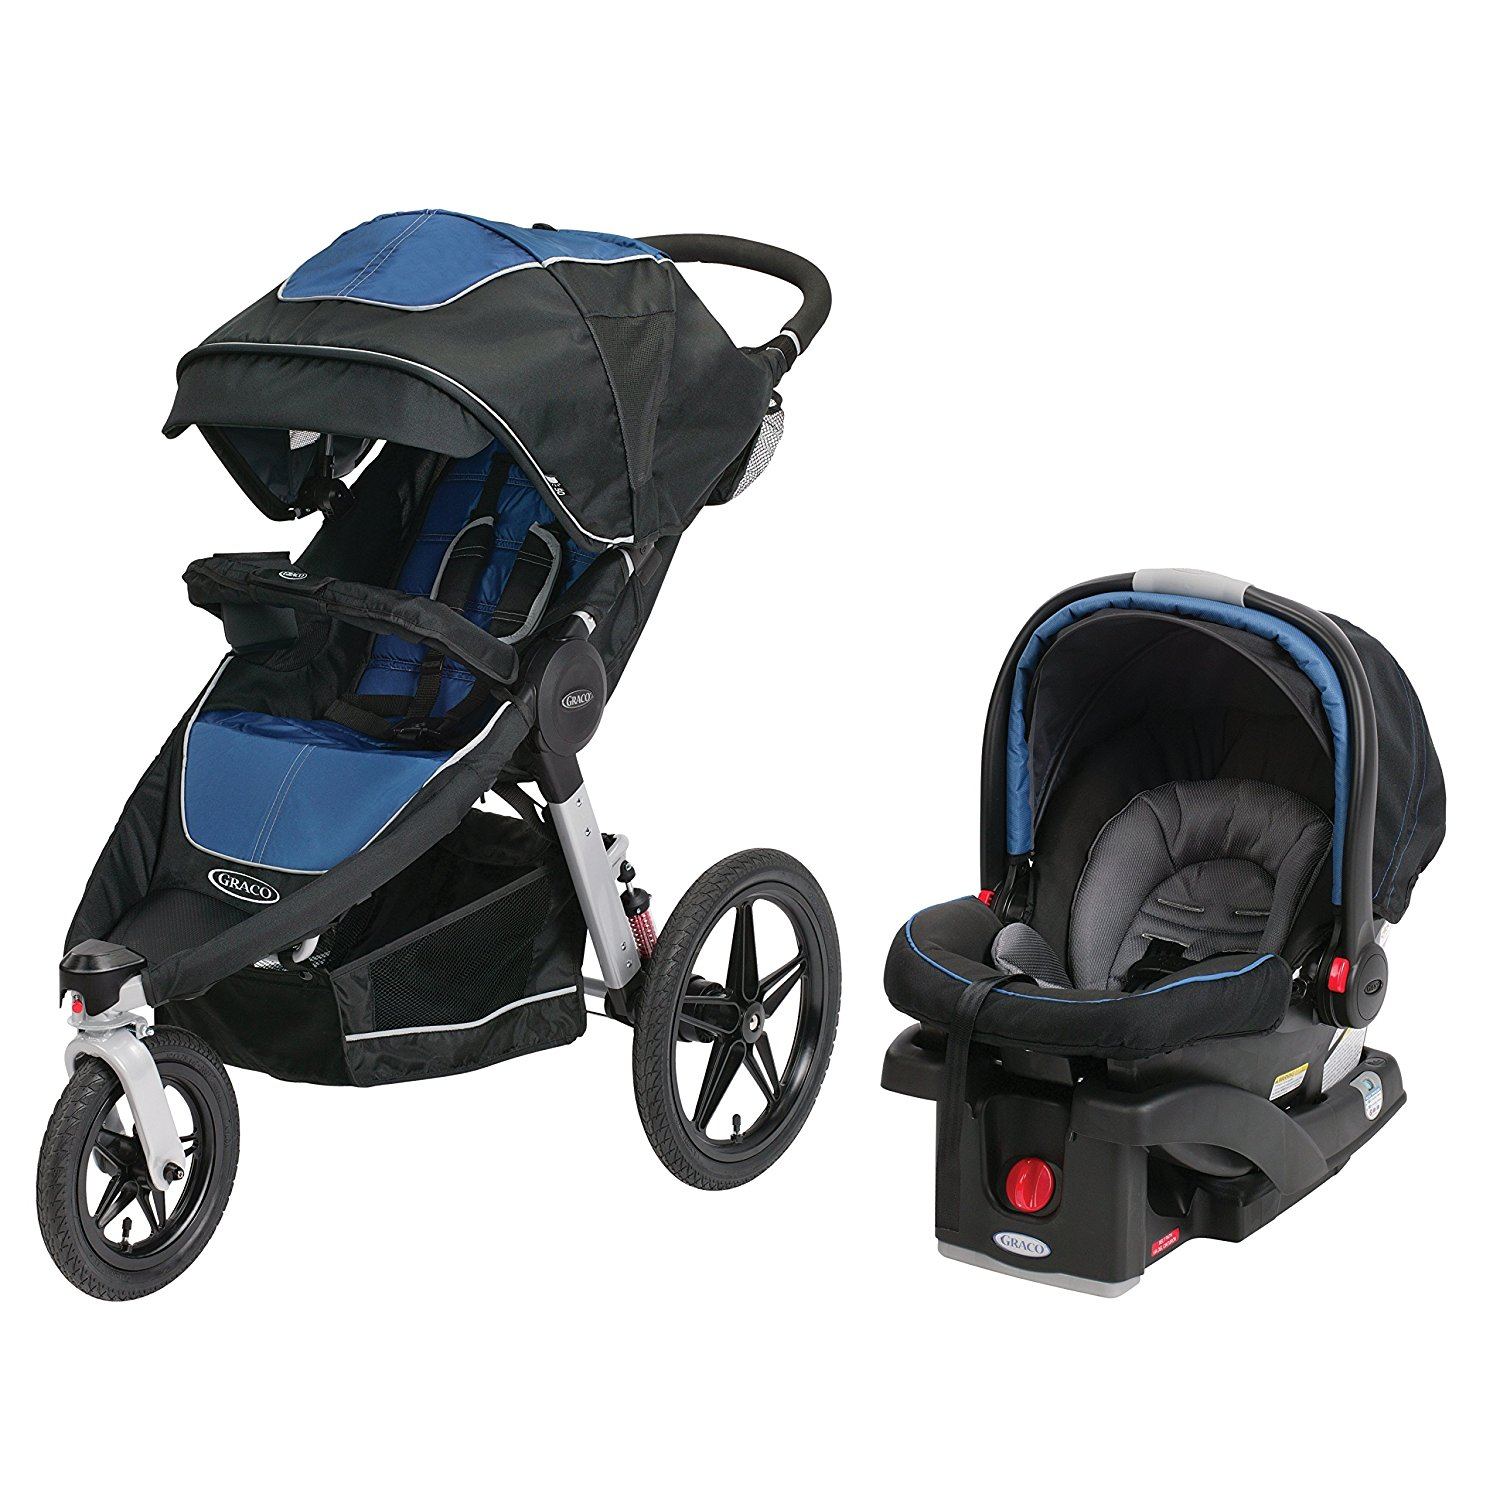 Britax Car Seat With Stroller Safest And Best Baby Car Seat And Stroller Combo